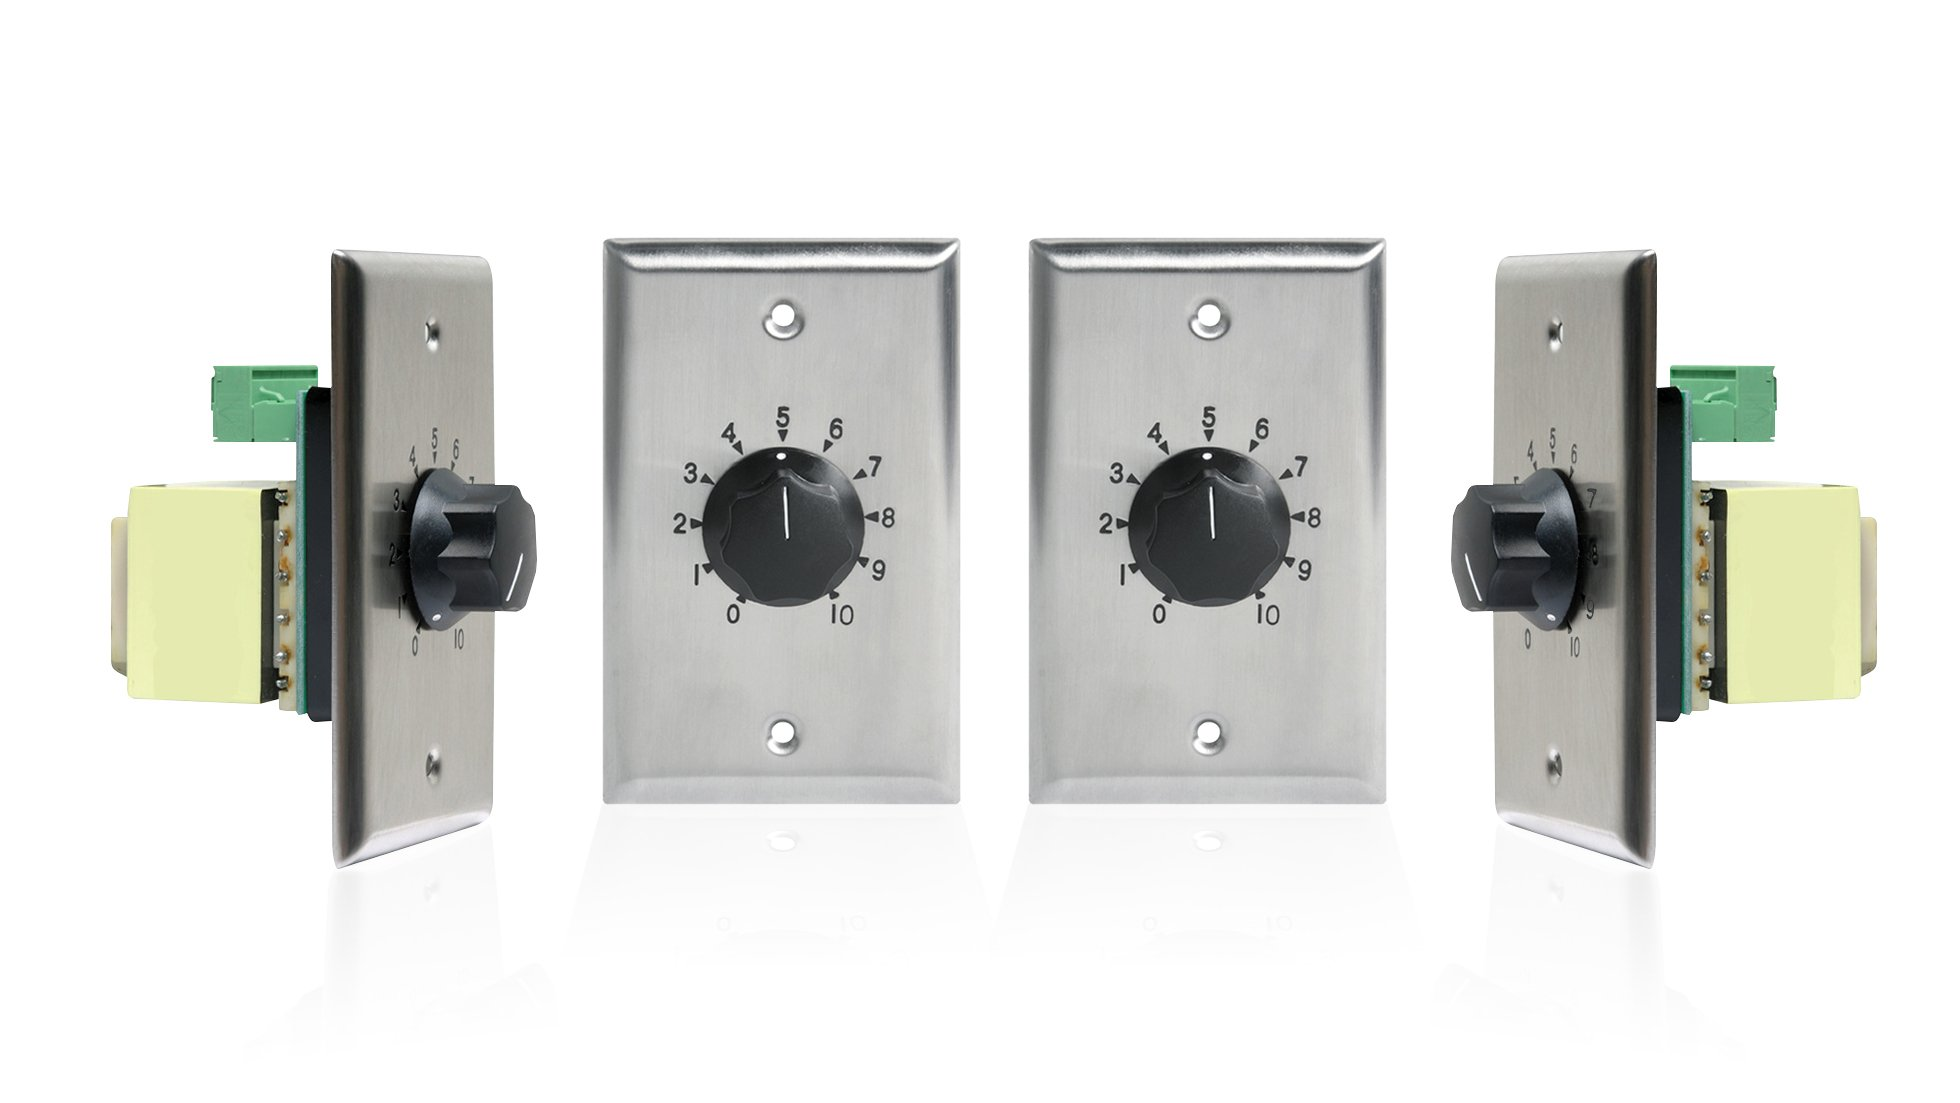 Atlas Sound AT Series 100 Watt 25/70 Volt Attenuators - Contractor Pack (4-Pack, Stainless Steel) by Atlas Sound (Image #1)